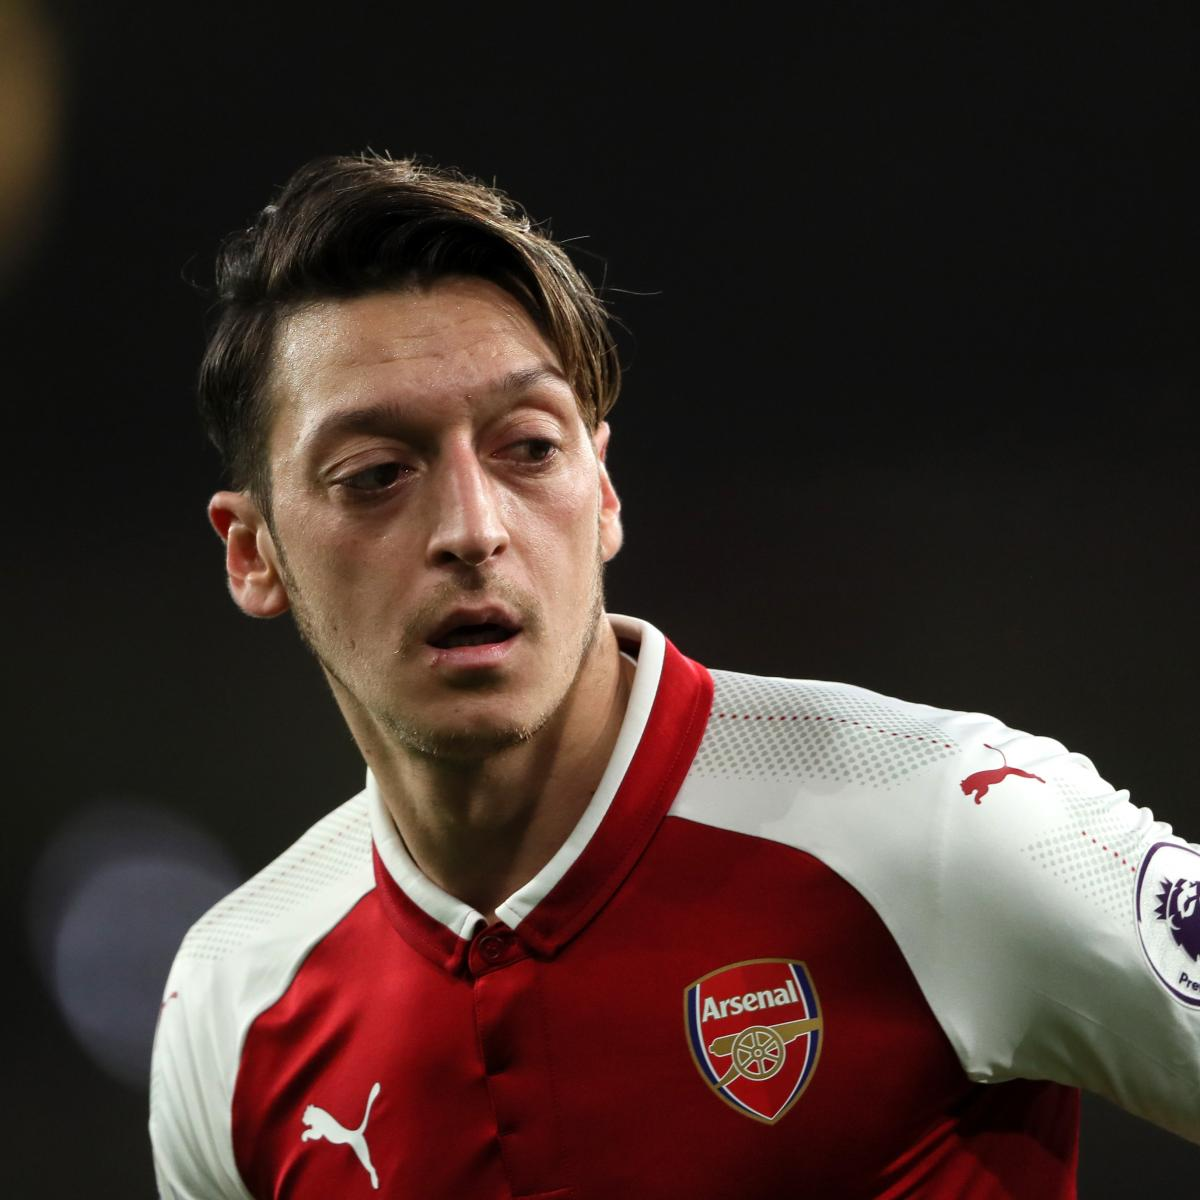 Manchester United Transfer News Latest Rumours On Lucas: Manchester United Transfer News: Latest Rumours On Mesut